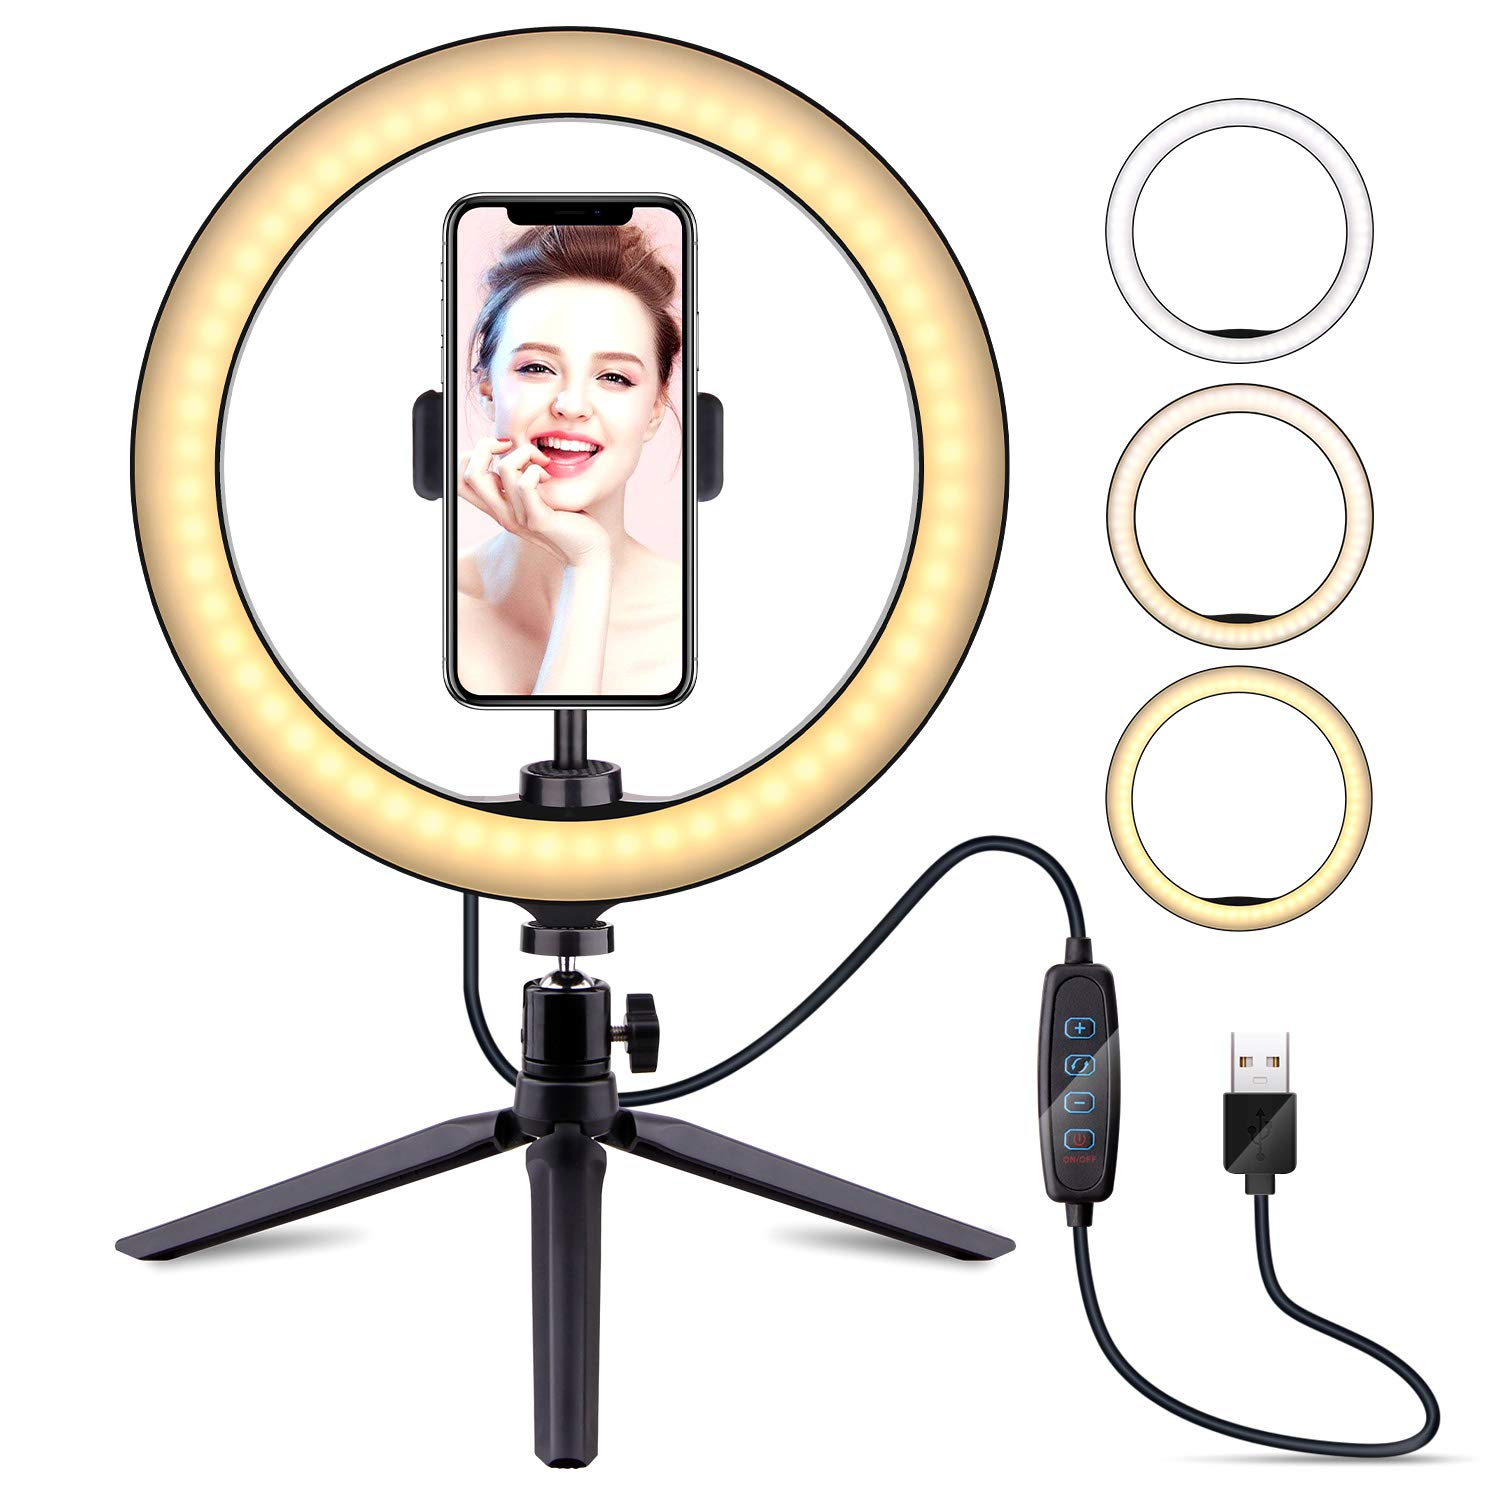 10'' Selfie Ring Light with Tripod Stand & Cell Phone Holder, LATZZ Dimmable Desktop LED Lamp Camera Ringlight for Live Stream/Makeup/YouTube Video/Photography by LATZ·Z